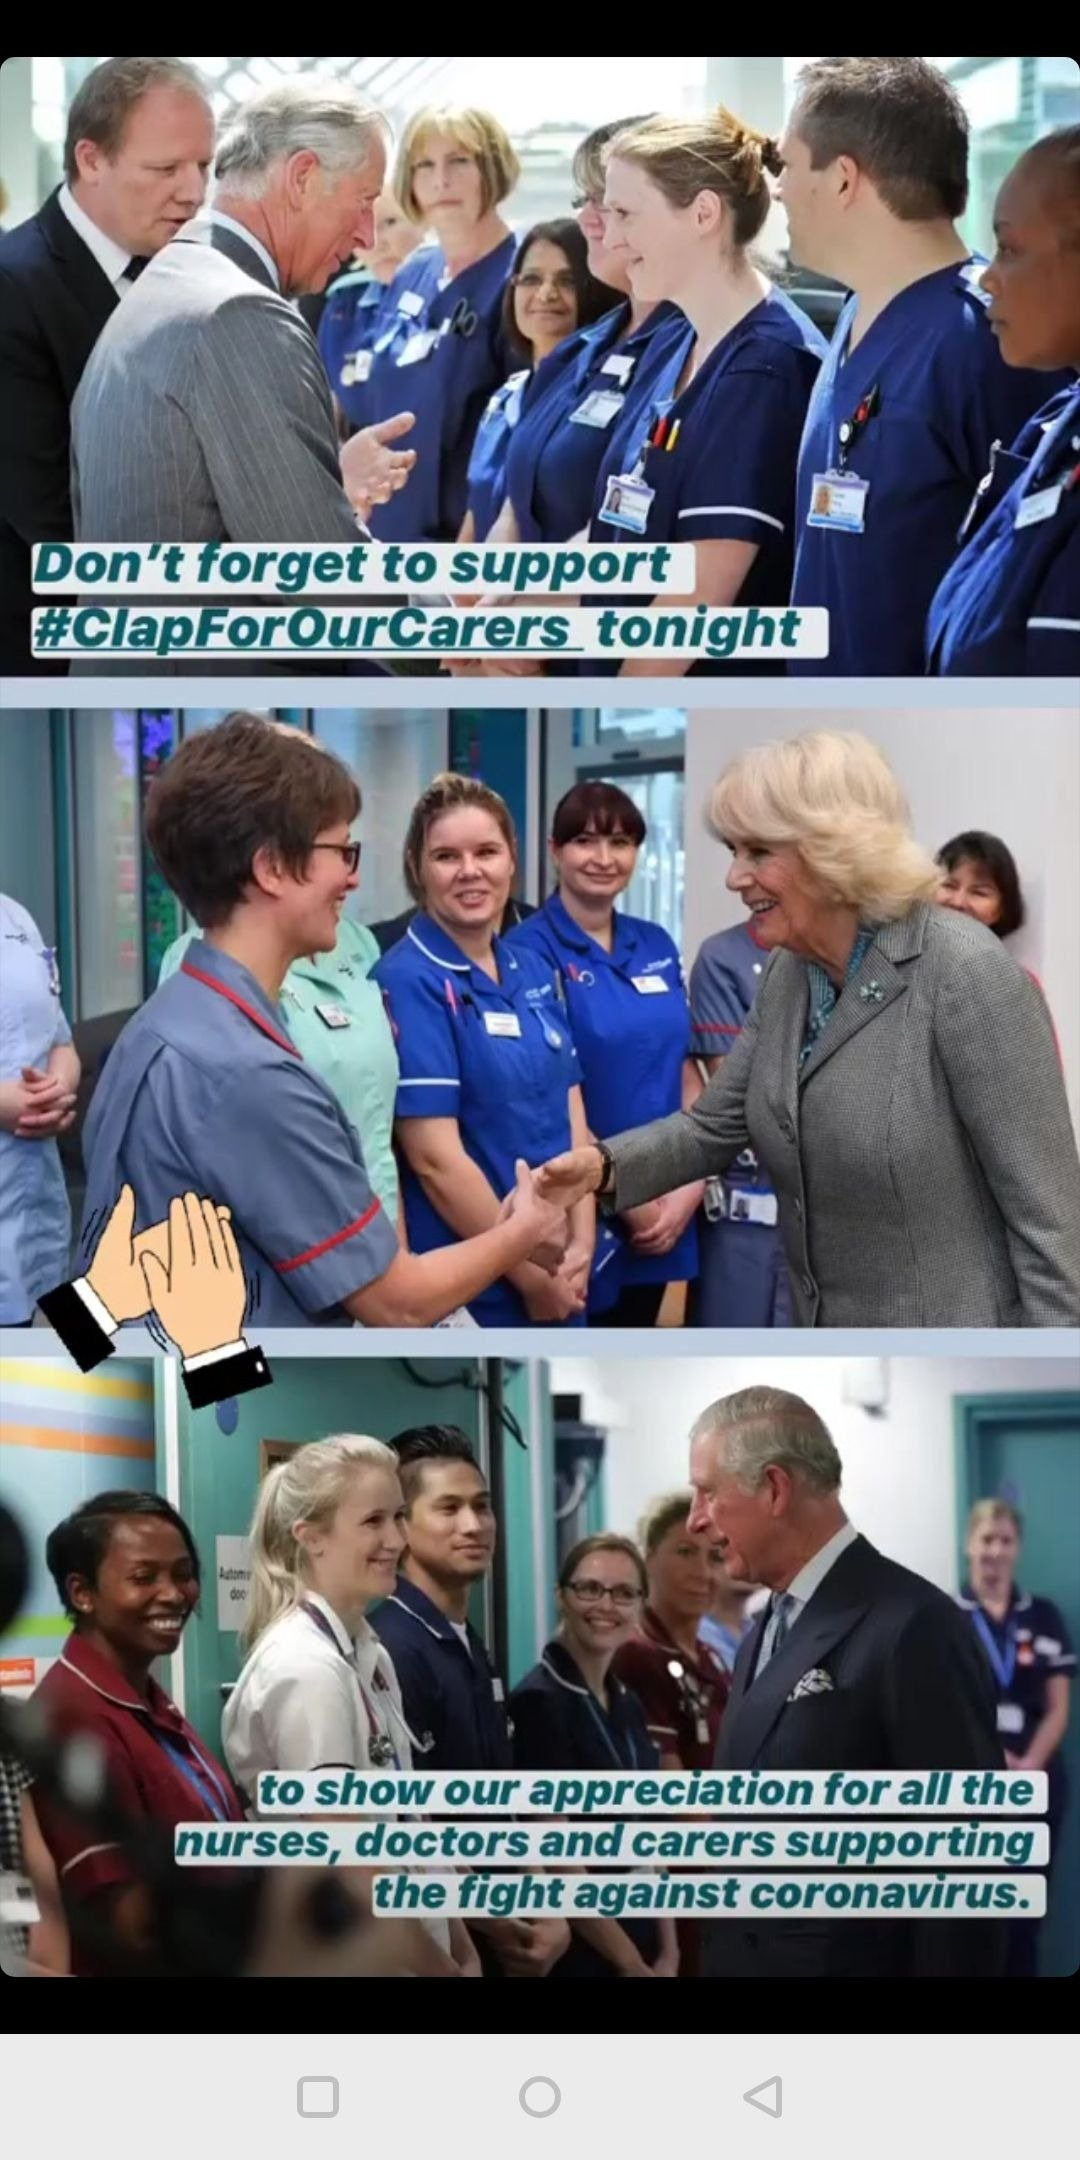 Prince Charles and Duchess Camilla meeting medical staff, images shared on March 26, 2020 | Photo: Instagram Story/clarencehouse